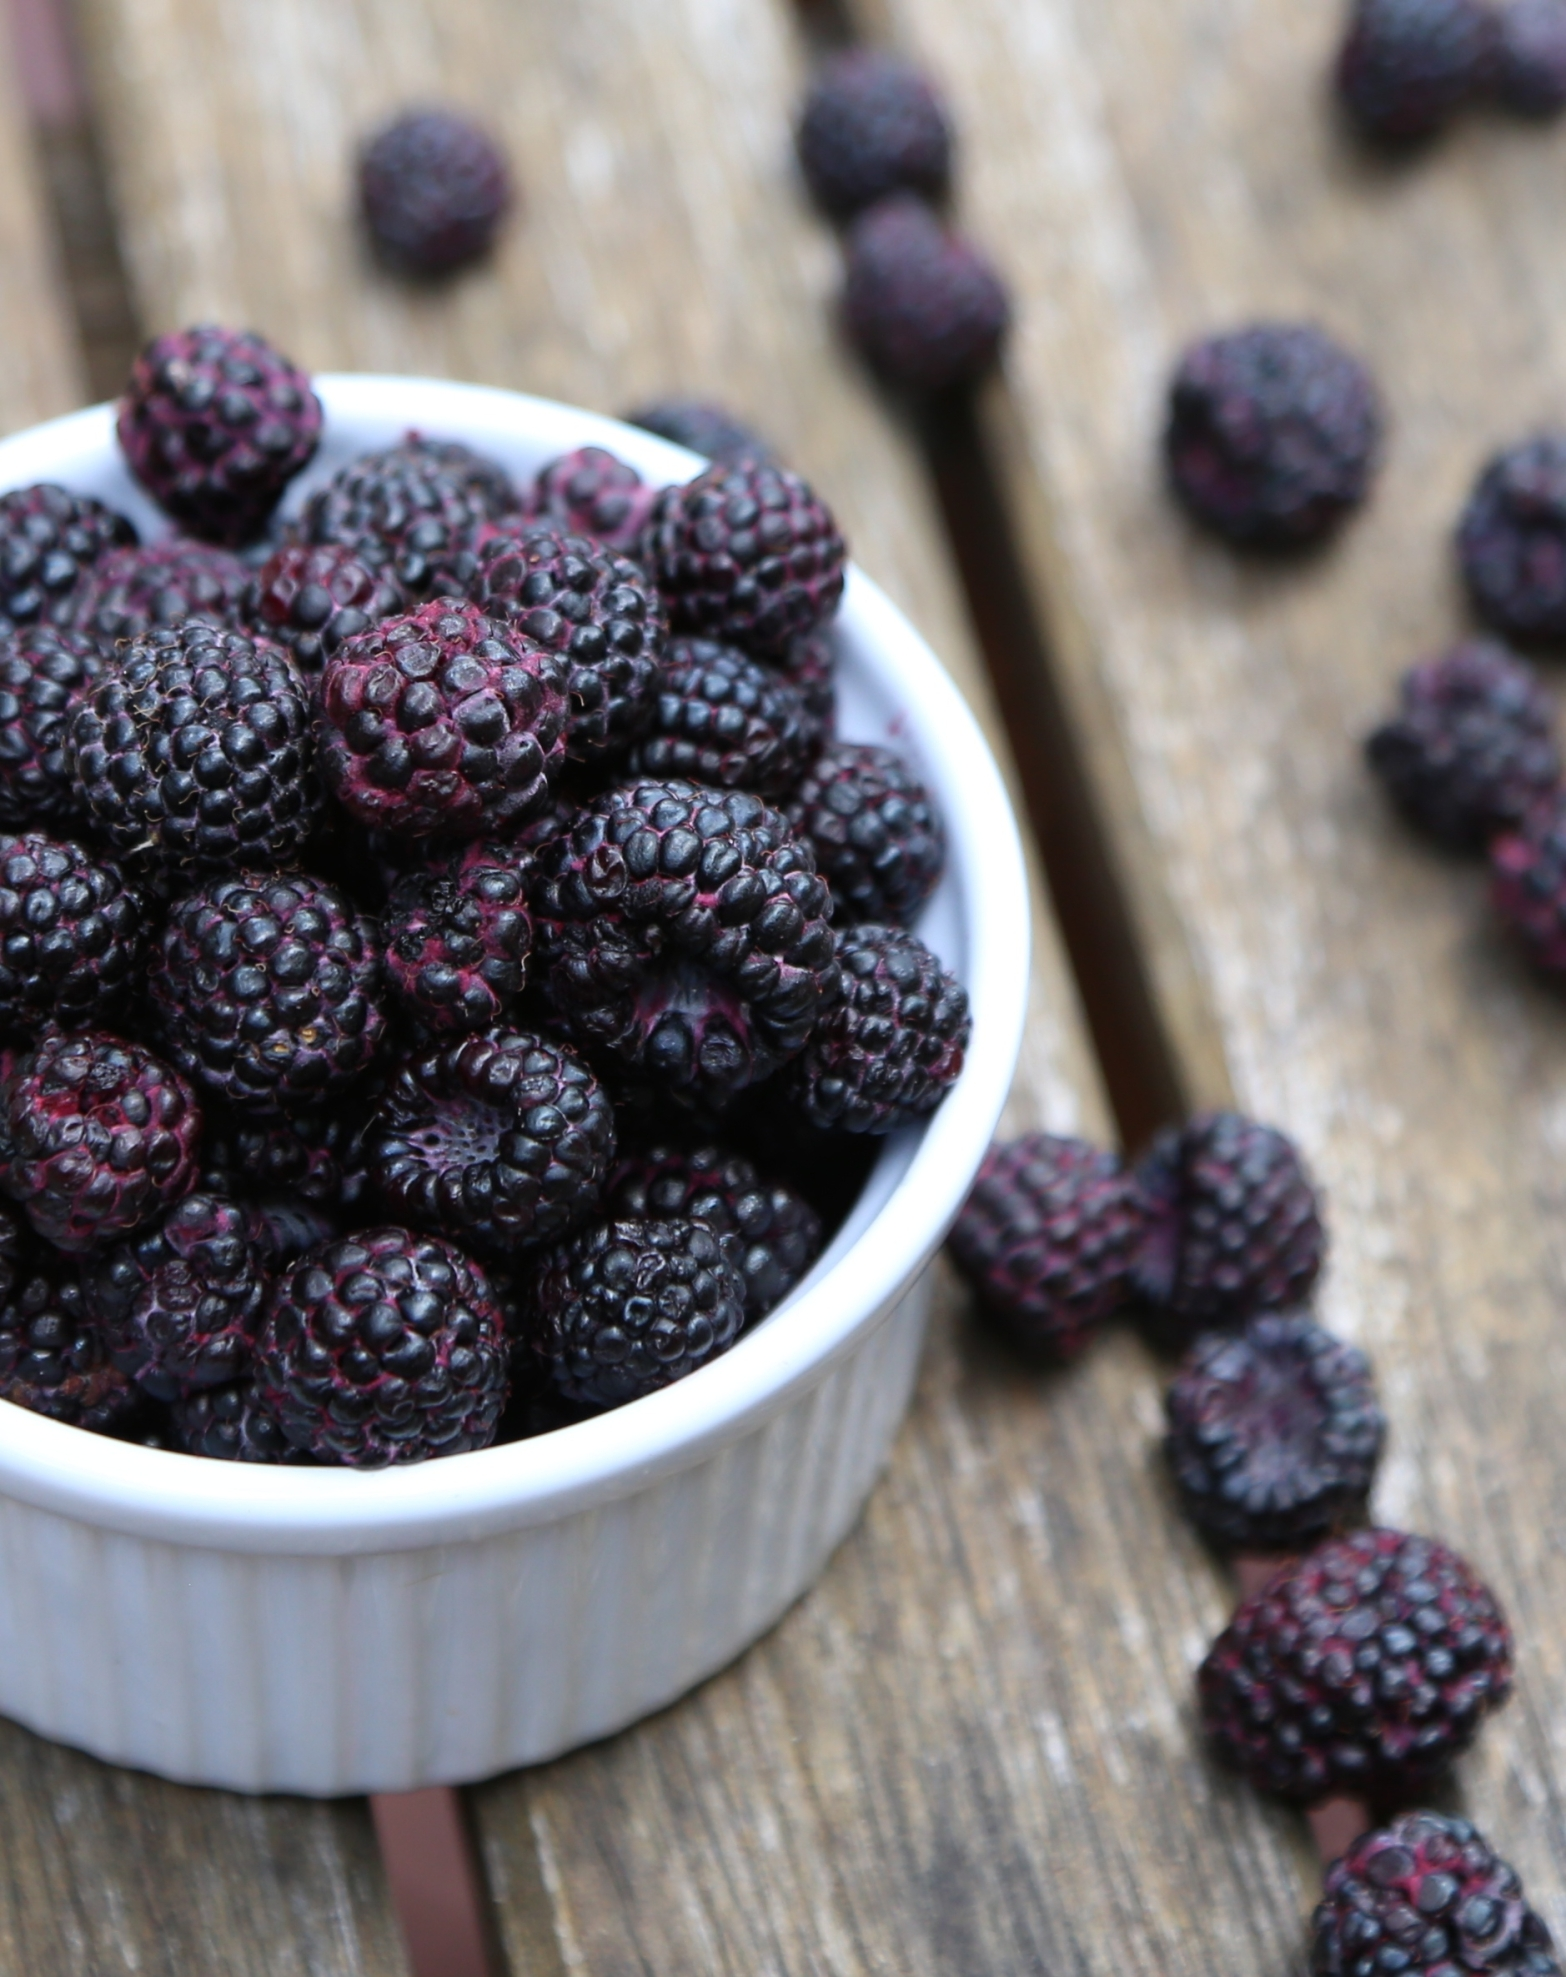 Blackraspberries